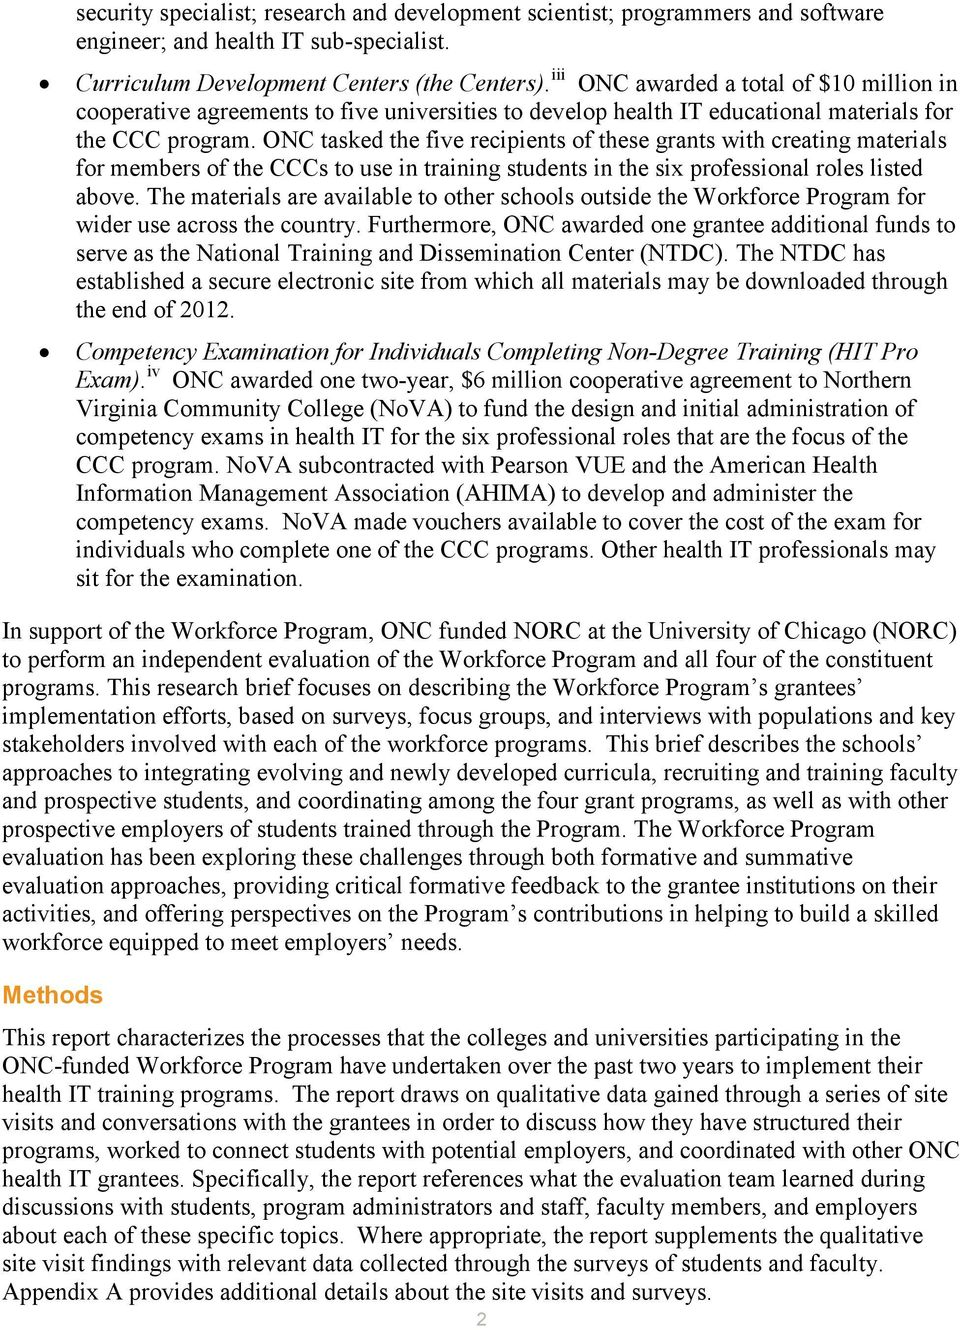 ONC tasked the five recipients of these grants with creating materials for members of the CCCs to use in training students in the six professional roles listed above.